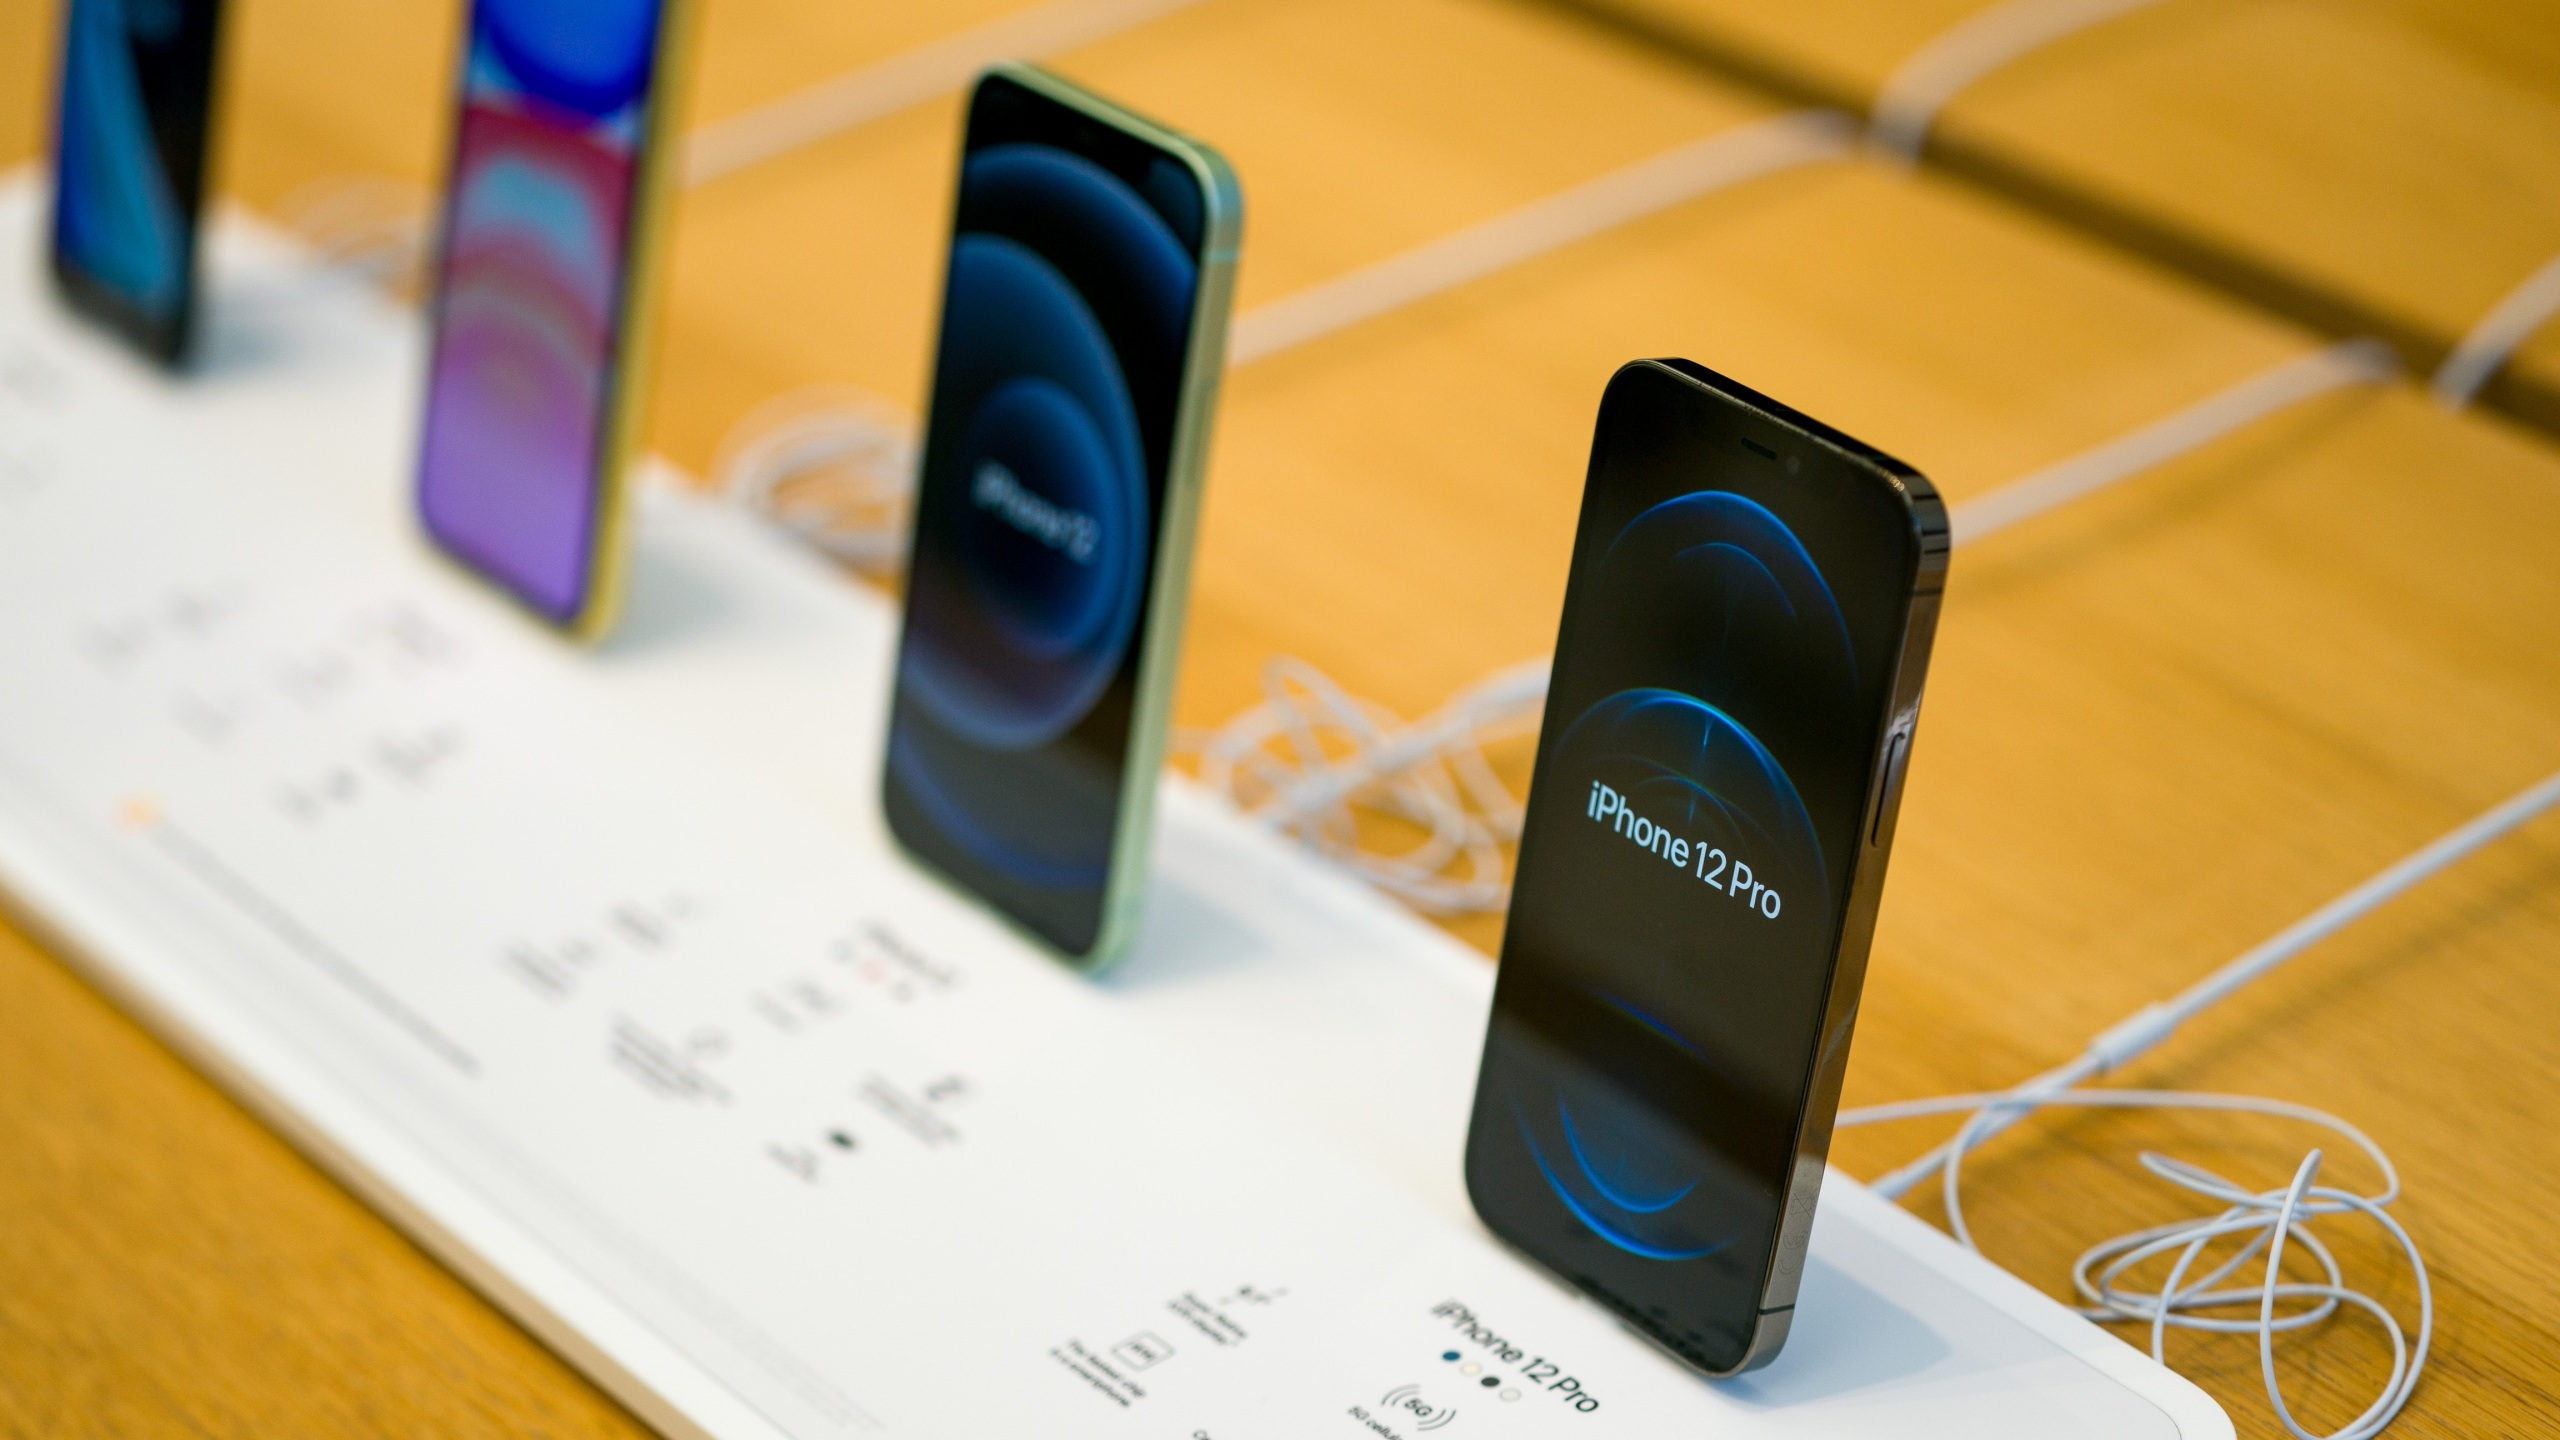 The new iPhone 12 and iPhone 12 Pro on display during launch day on October 23, 2020 in London, England. (Ming Yeung/Getty Images)